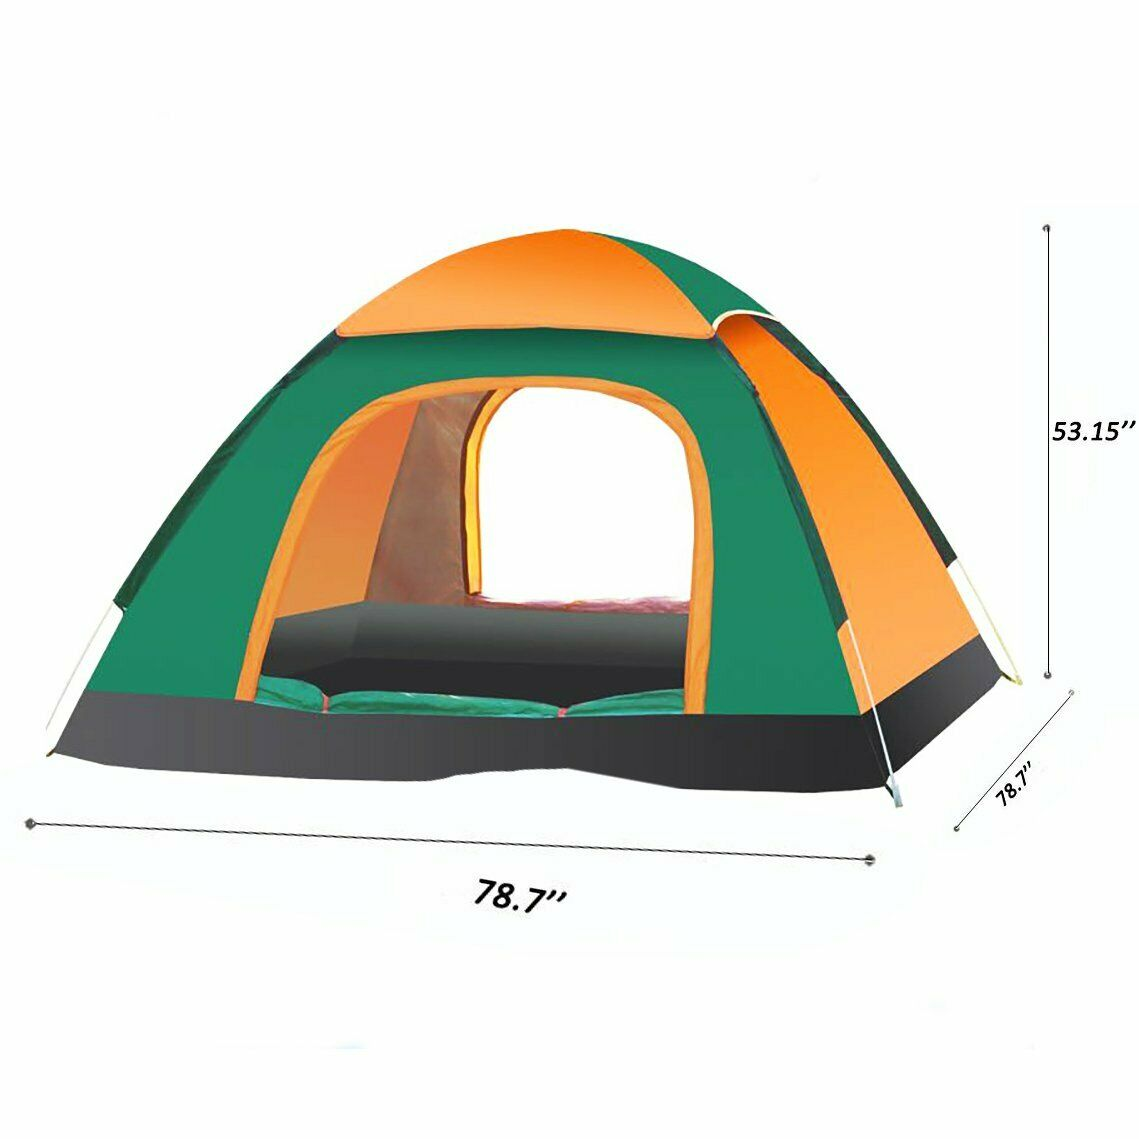 Large 3-4 Person Man Family Tent Camping Group Hiking Tent Canopy Pop Up Tent UK